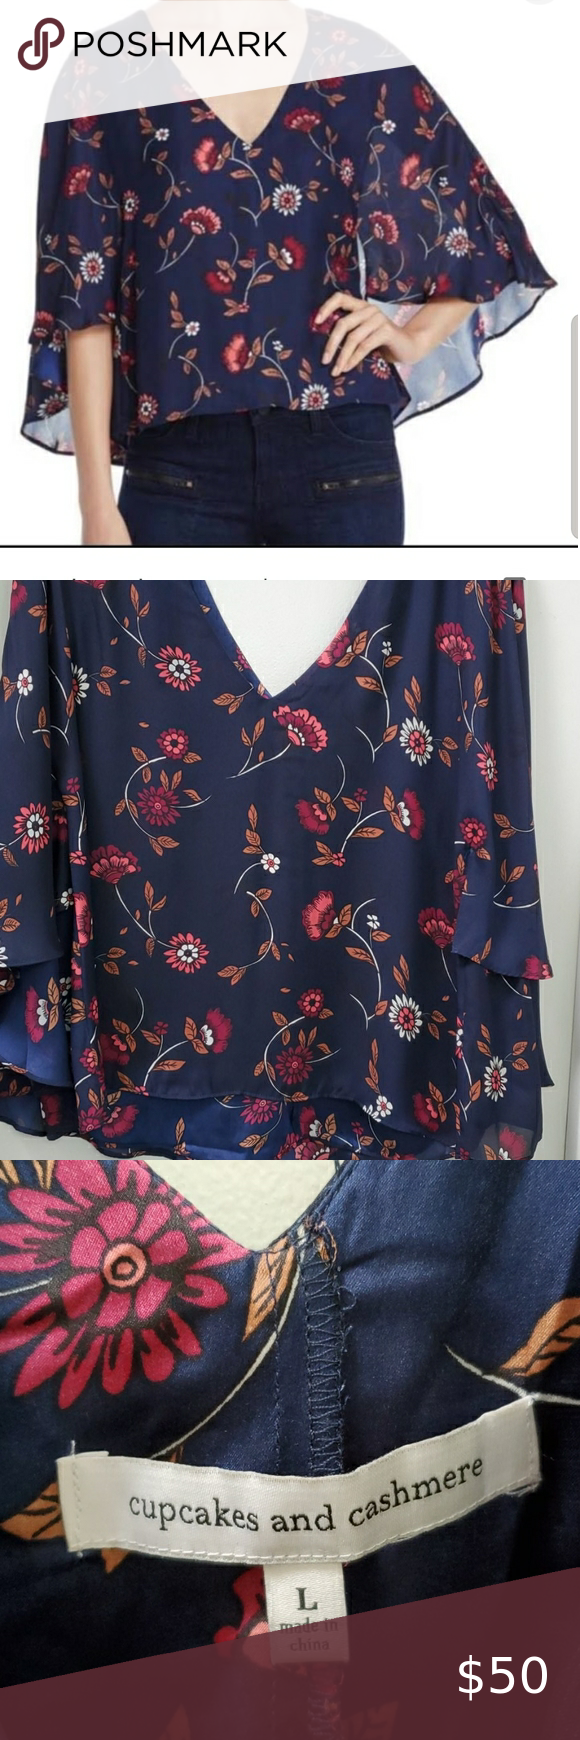 Cupcakes And Cashmere In 2021 Cupcakes And Cashmere Blue Floral Blouse Cashmere And Cupcakes [ 1740 x 580 Pixel ]